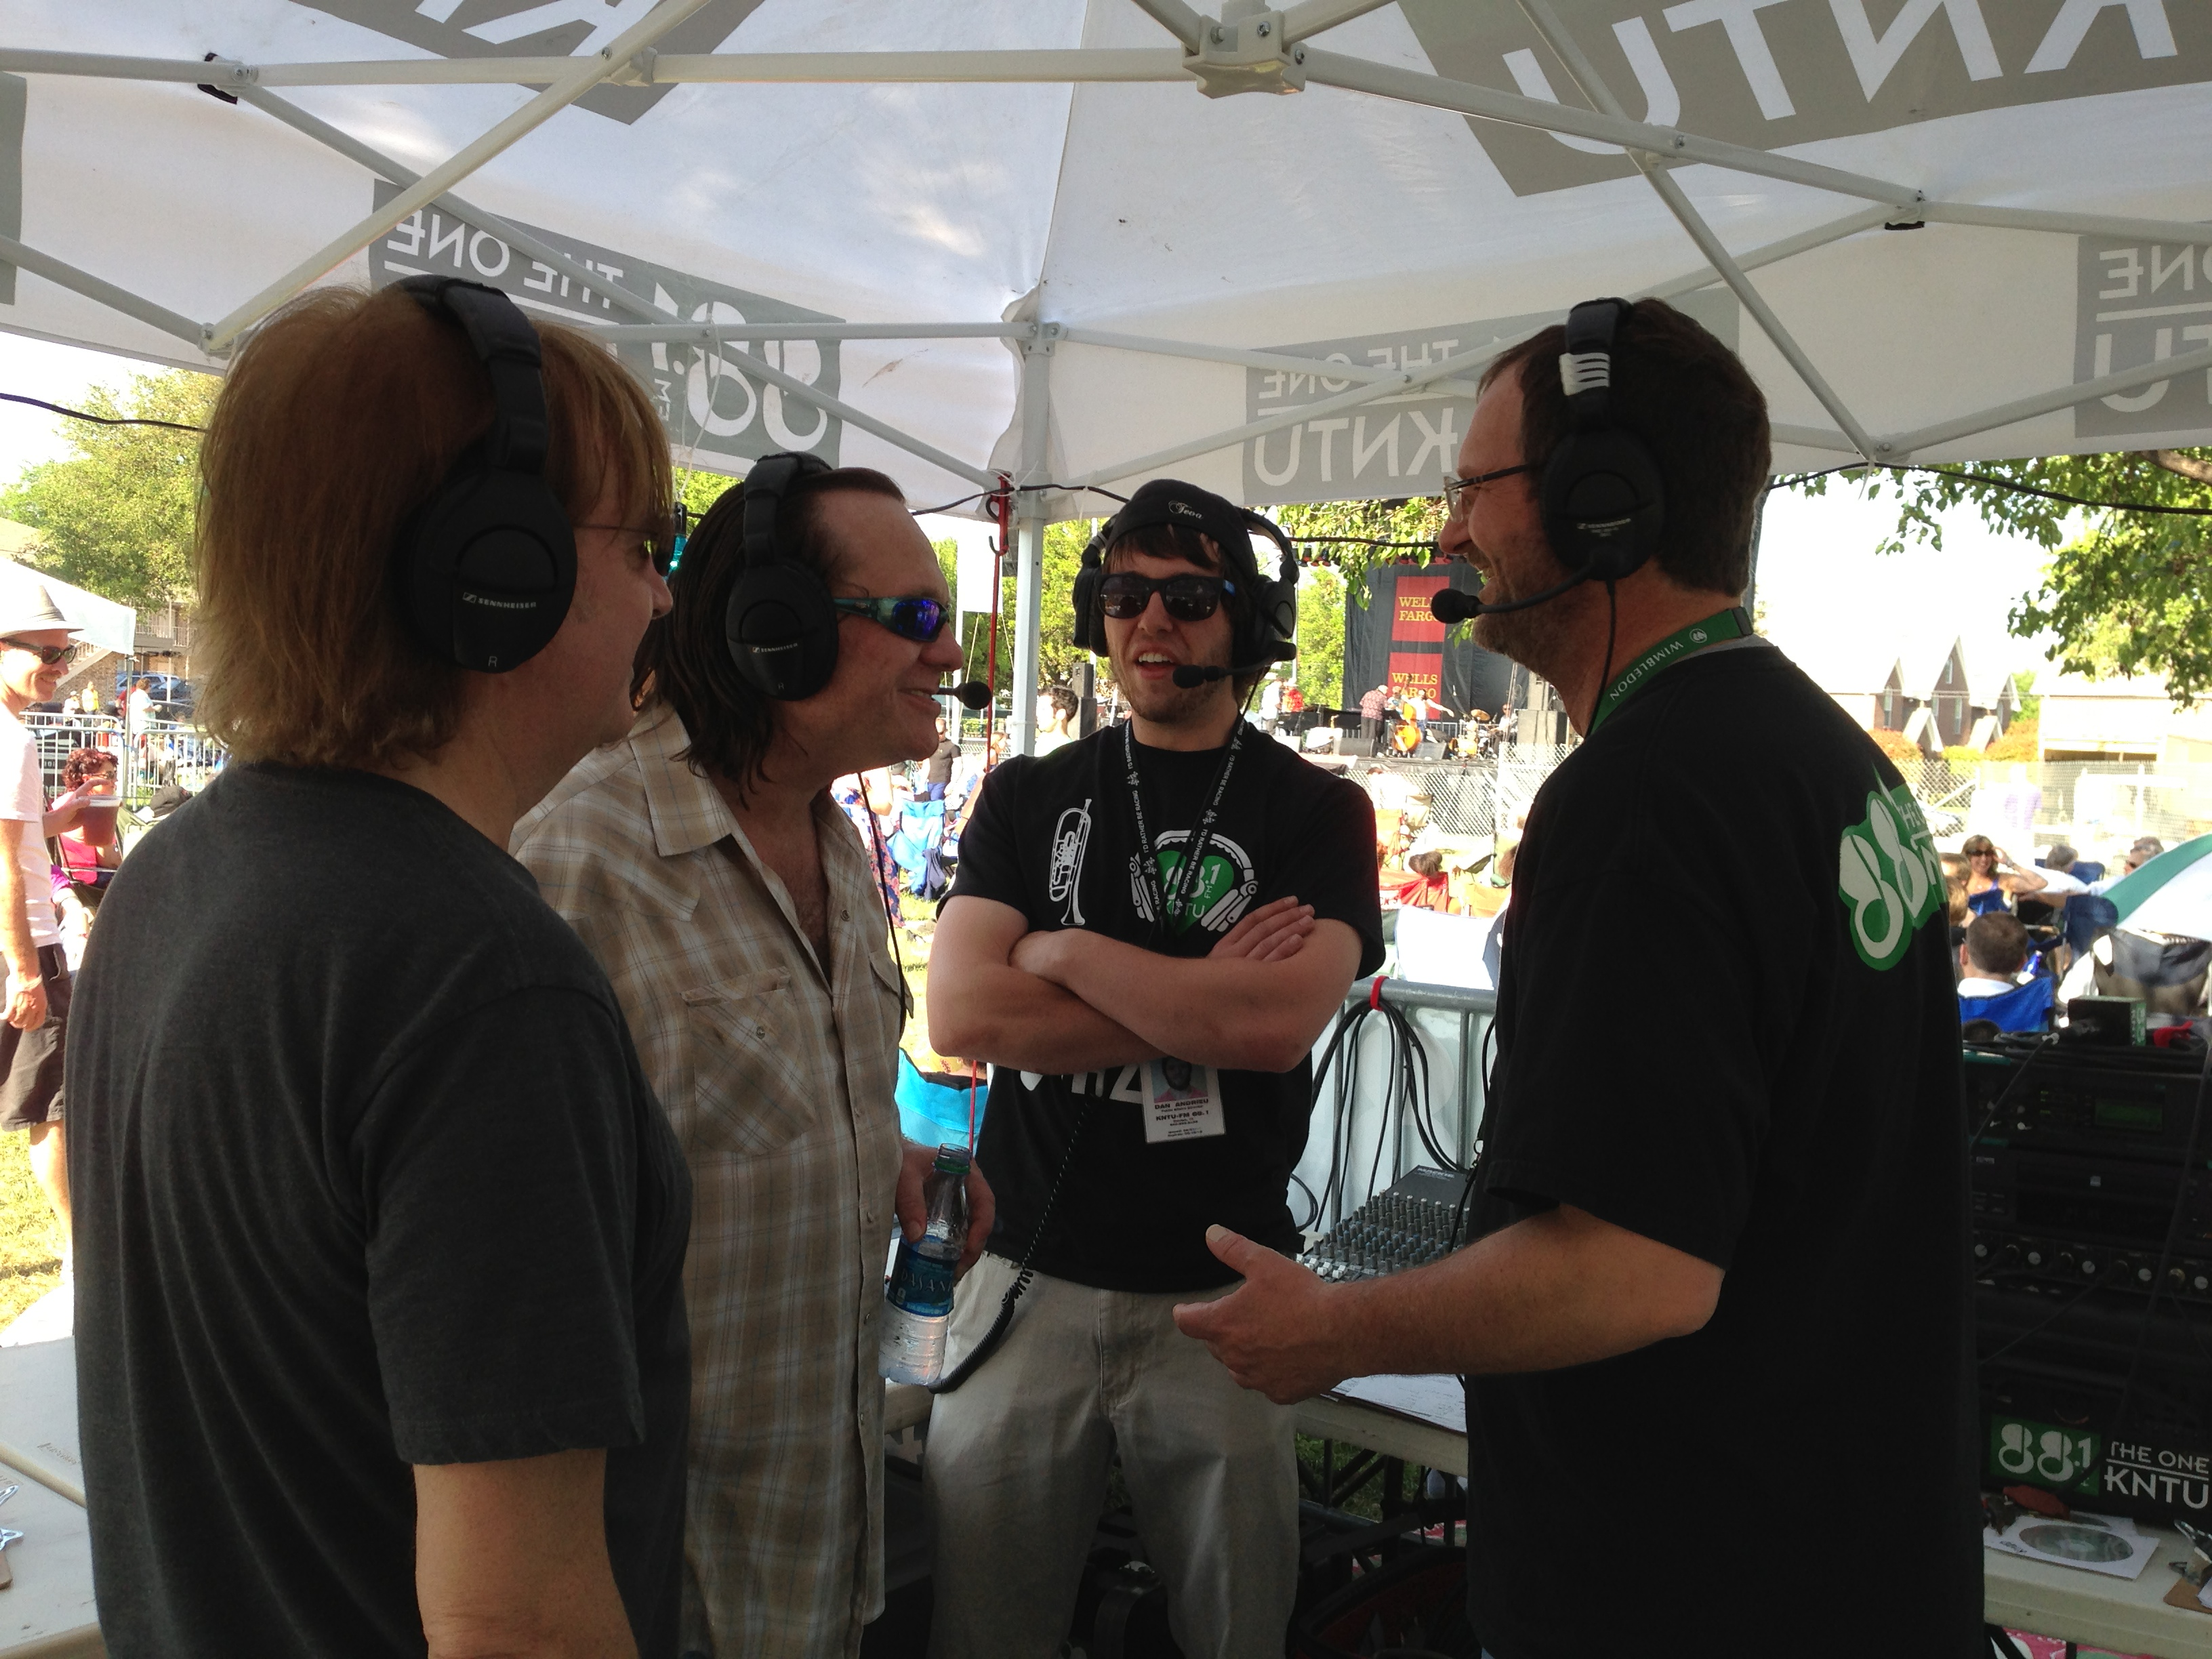 Radio Interview, L-R Eric Scortia, Clint Strong, KNTU DJ, Station Manager-Mark Lambert